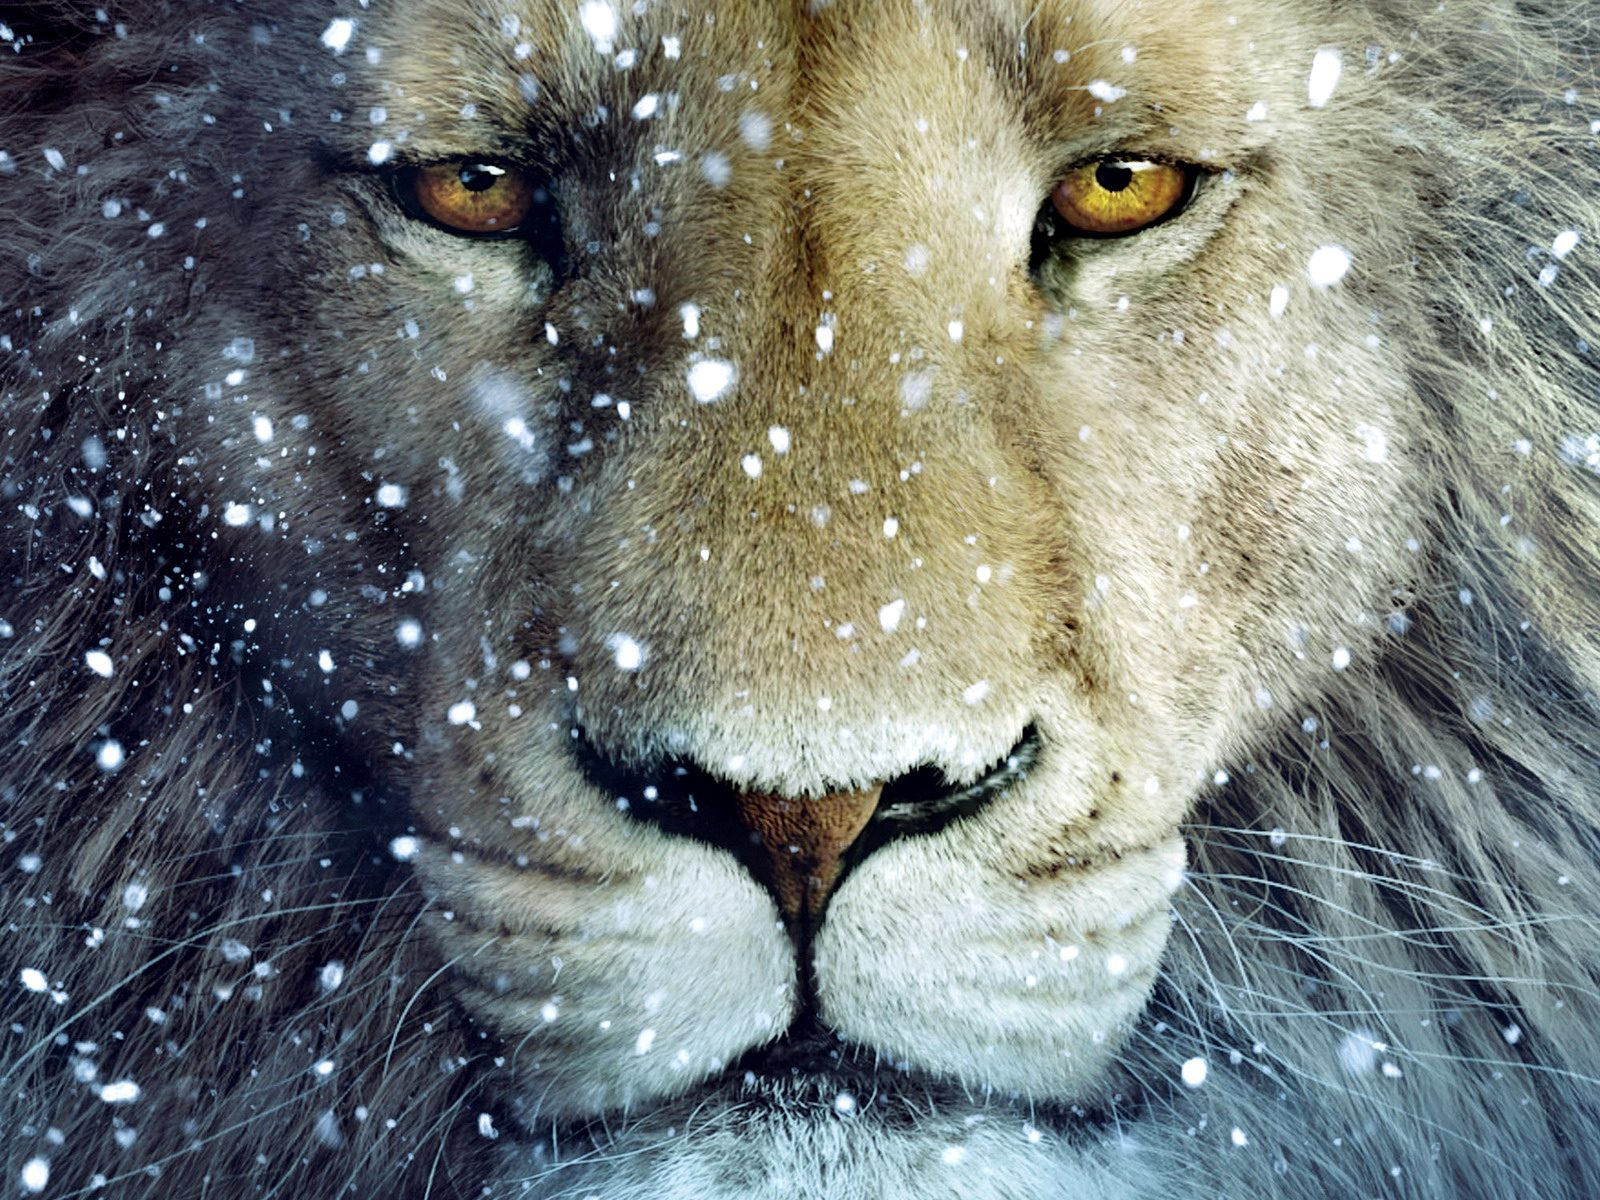 Lion wallpapers for ipad Funny Animal 1600x1200